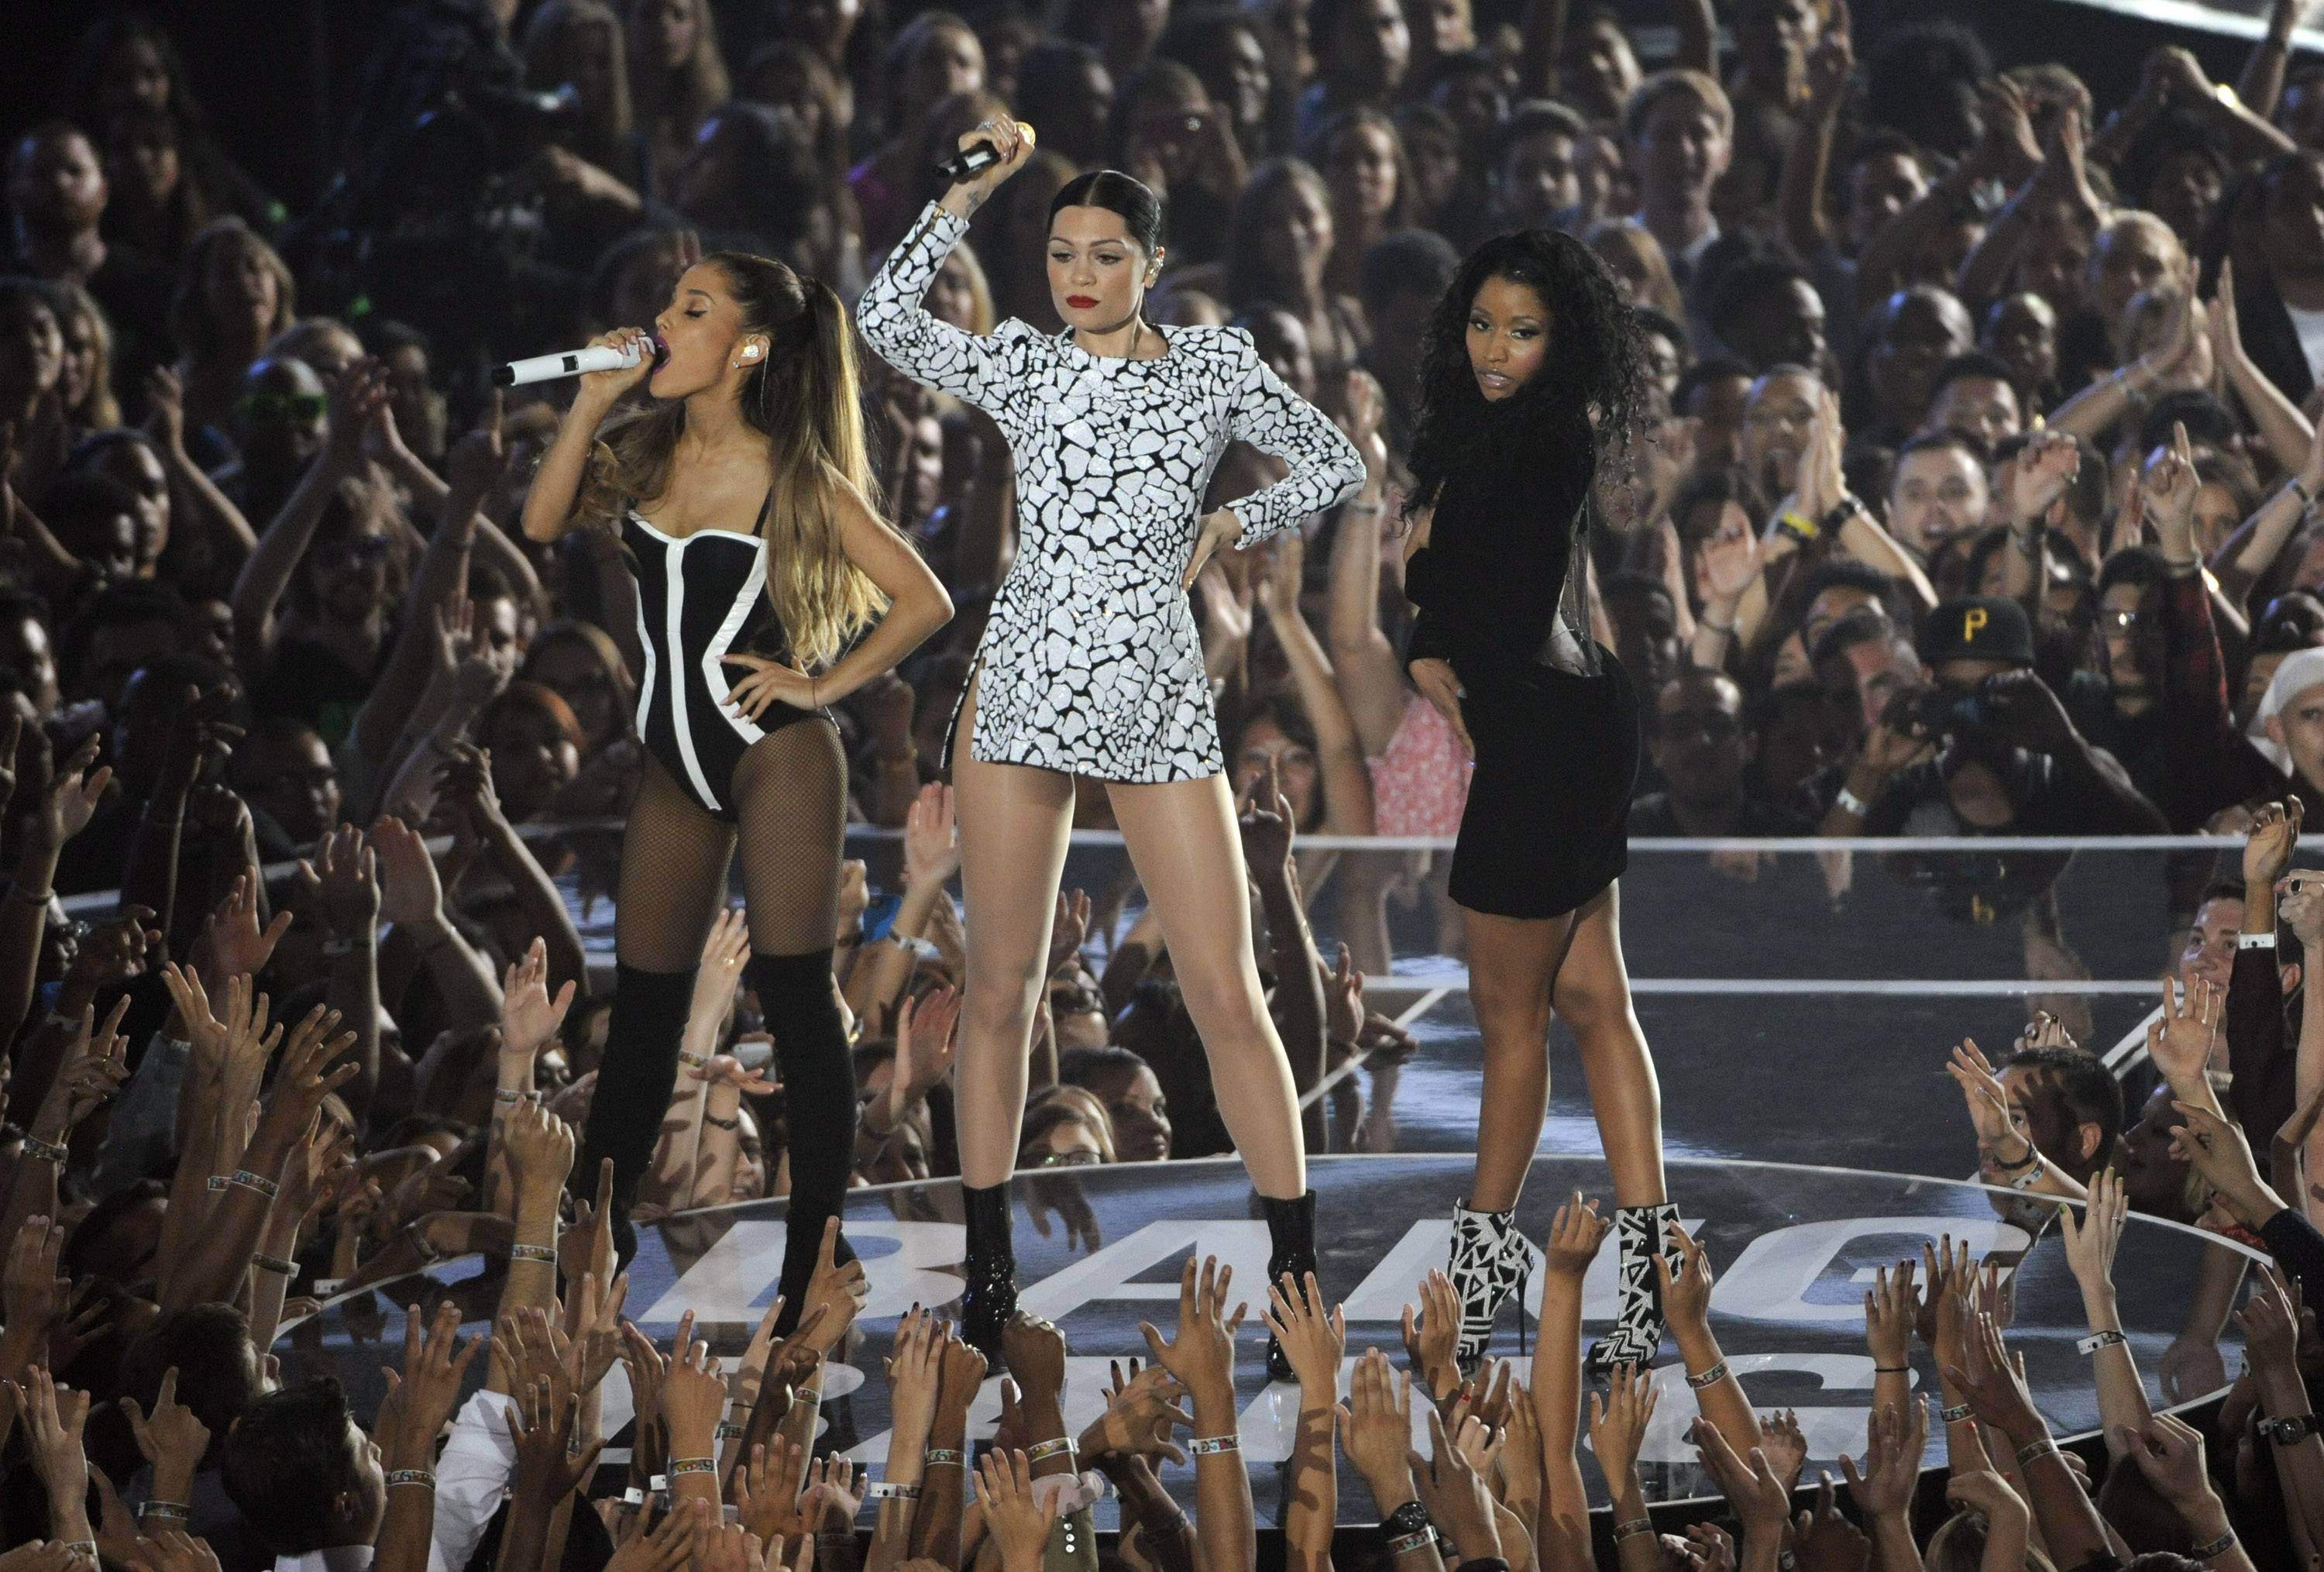 Ariana Grande, from left, Jessie J and Nicki Minaj perform at the MTV Video Music Awards.